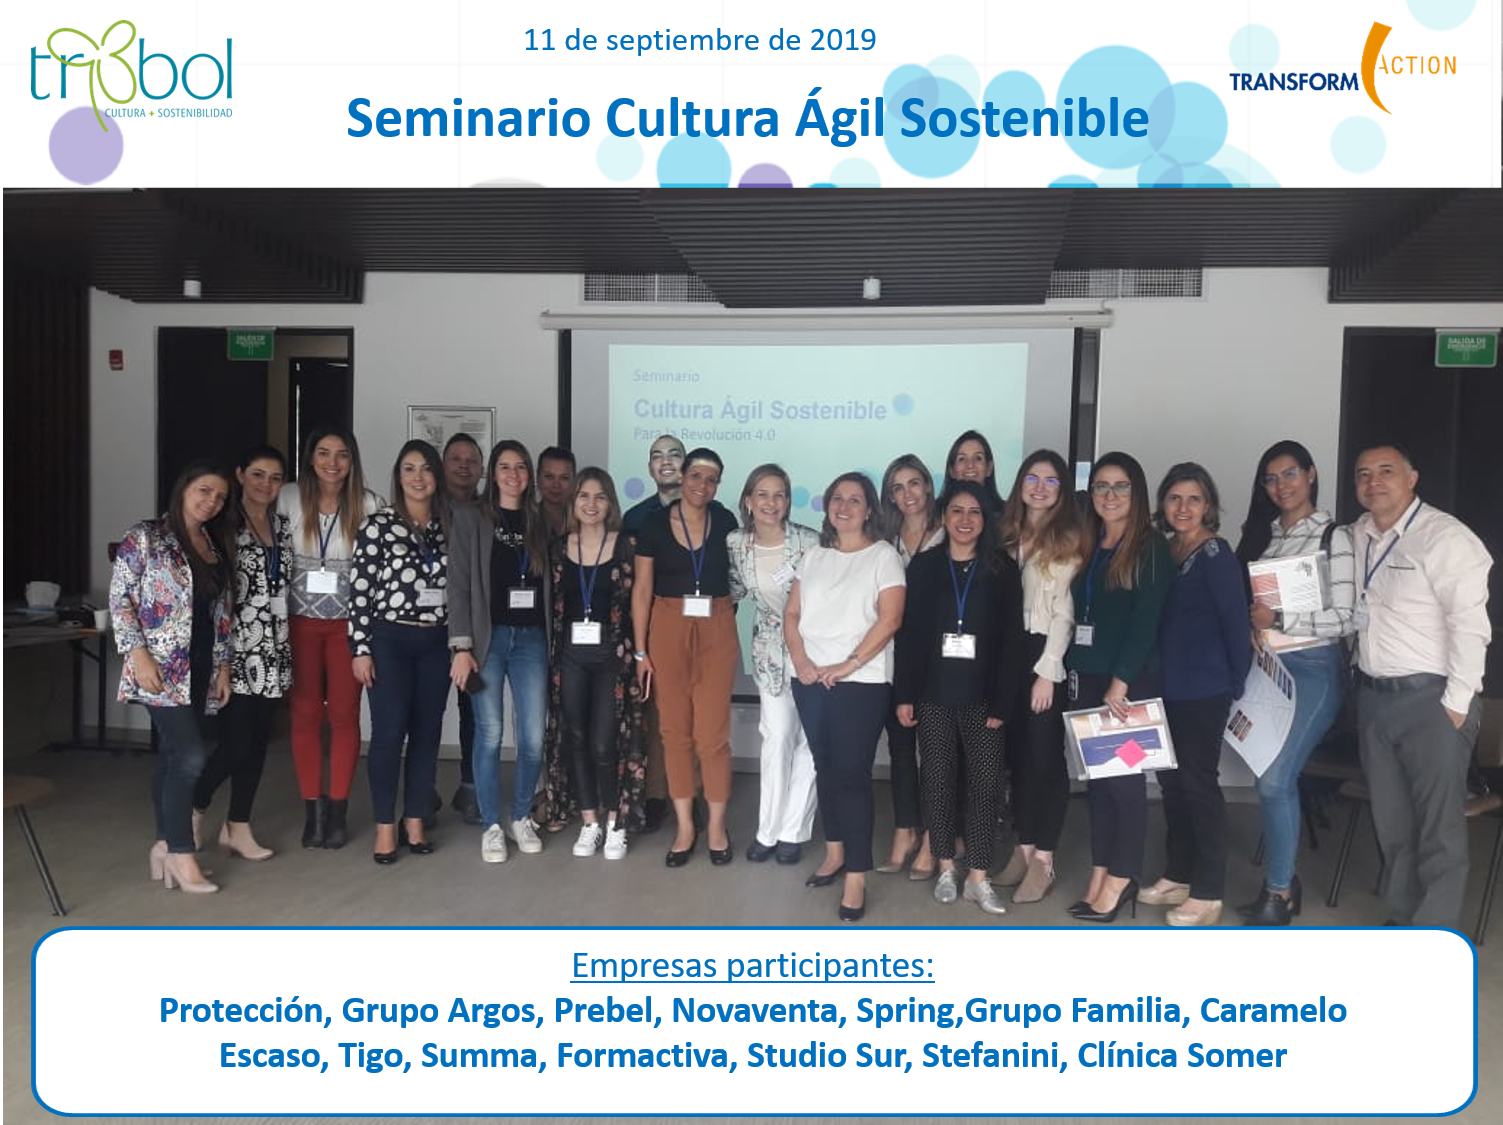 Seminario Cultura Ágil Sostenible | Transform Action